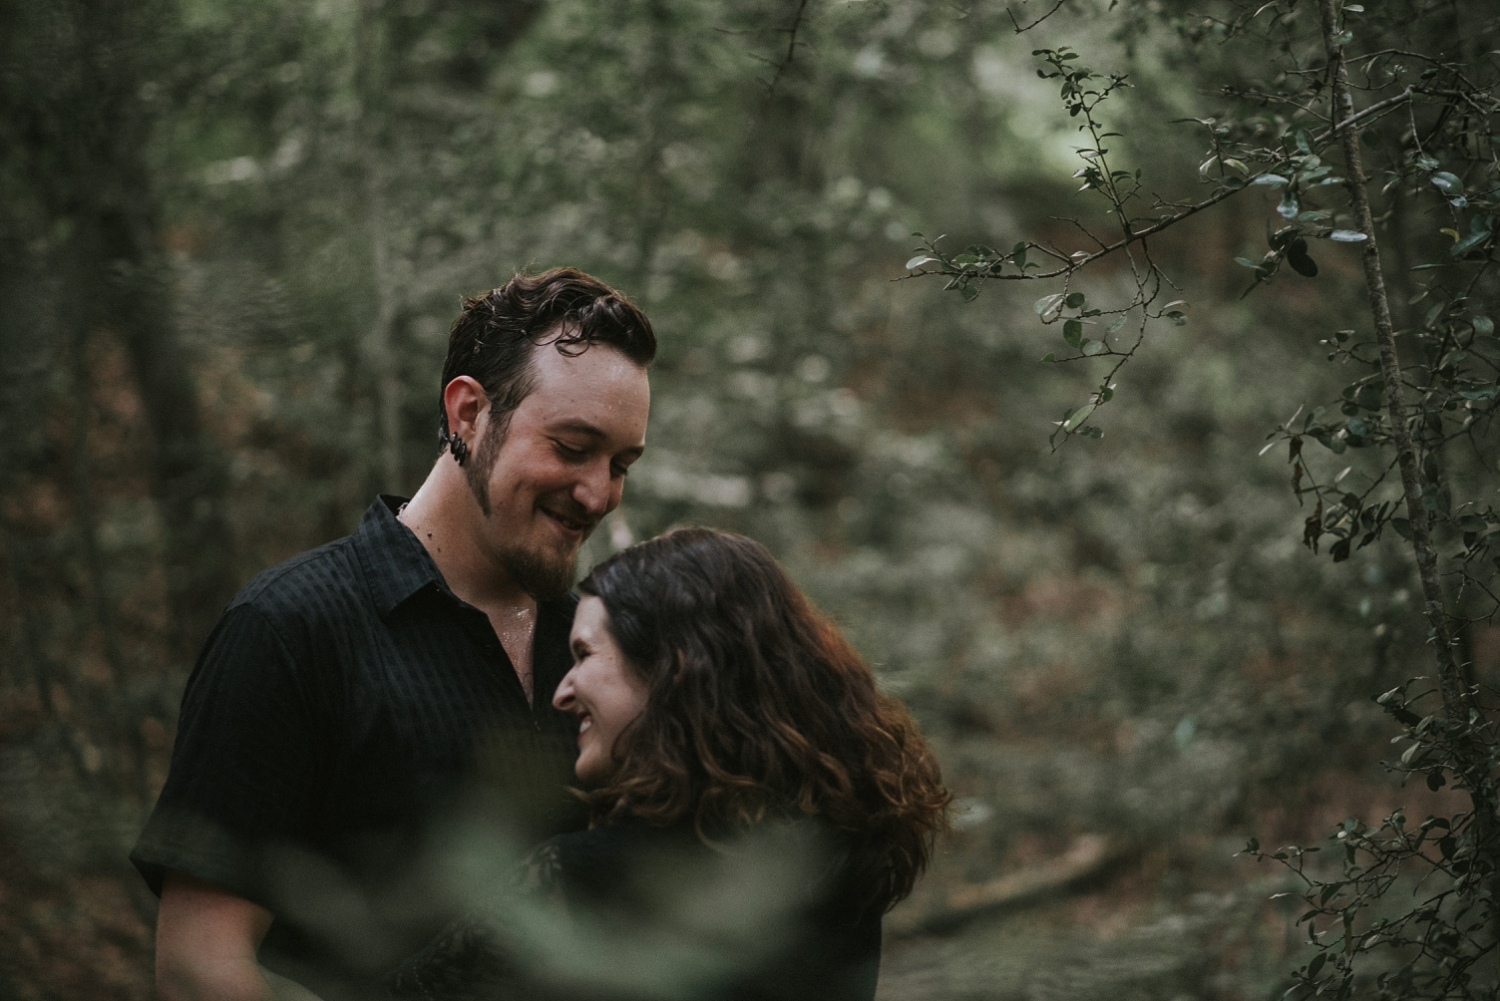 Austin Engagement Photography by Donny Tidmore